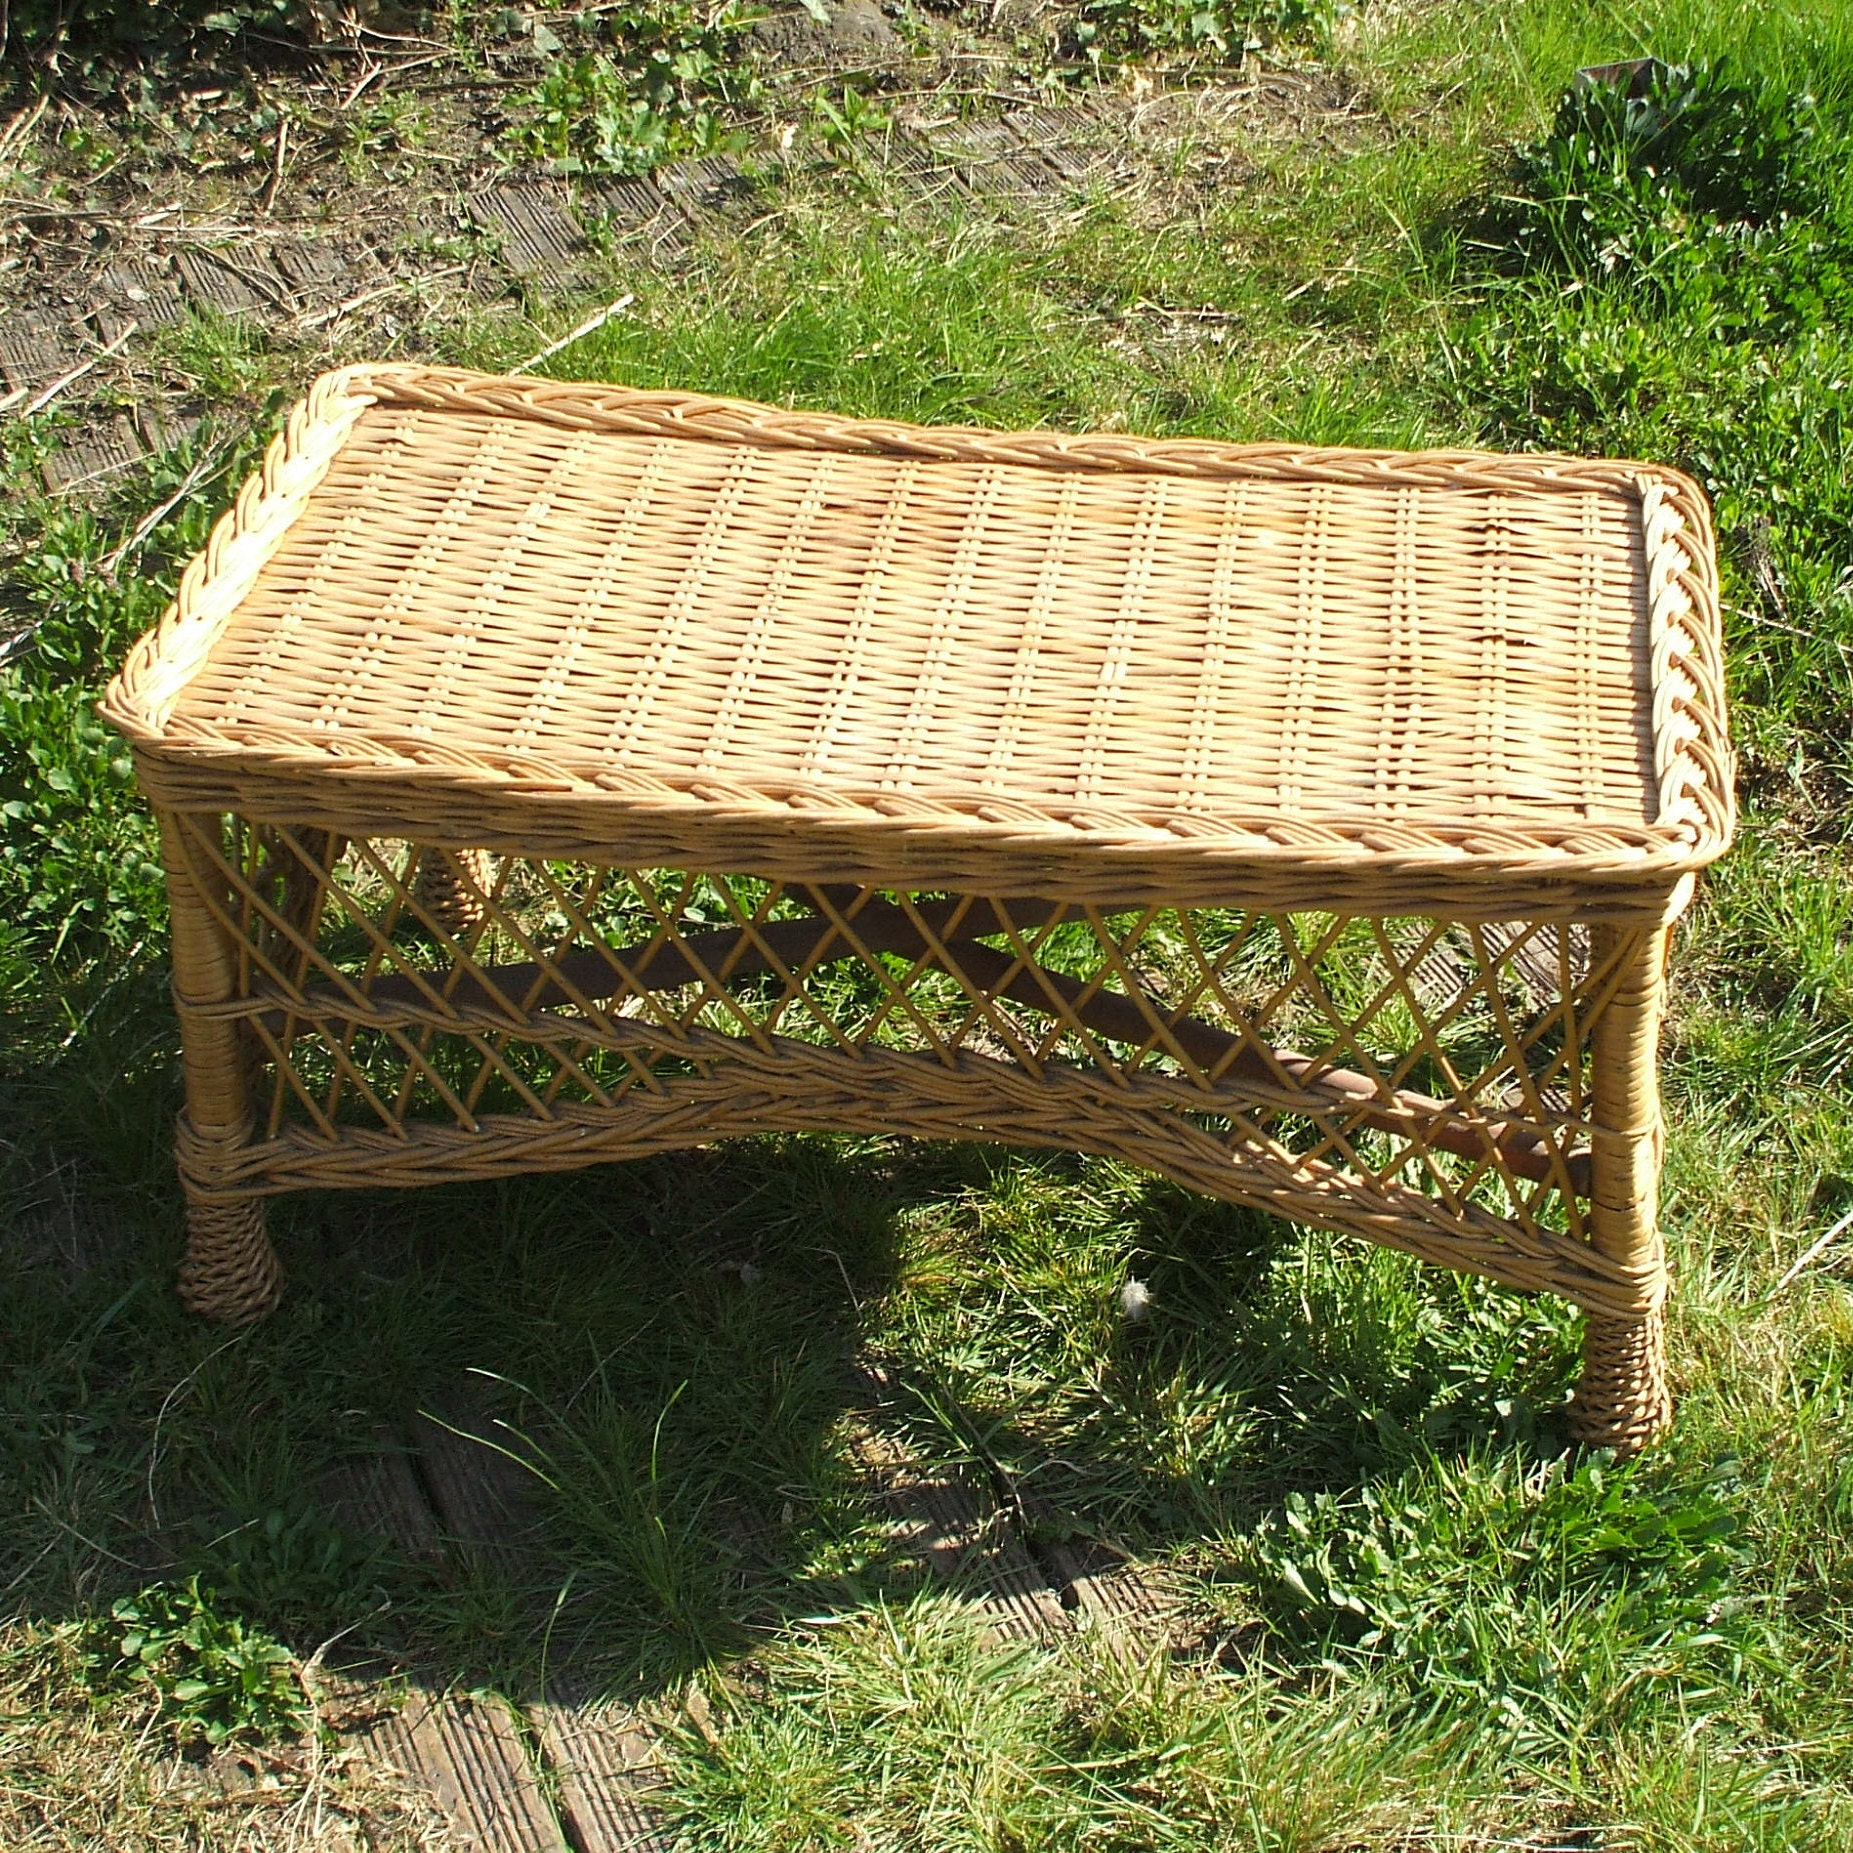 Rattan Coffee Table Etsy: Rattan And Wicker Coffee Table